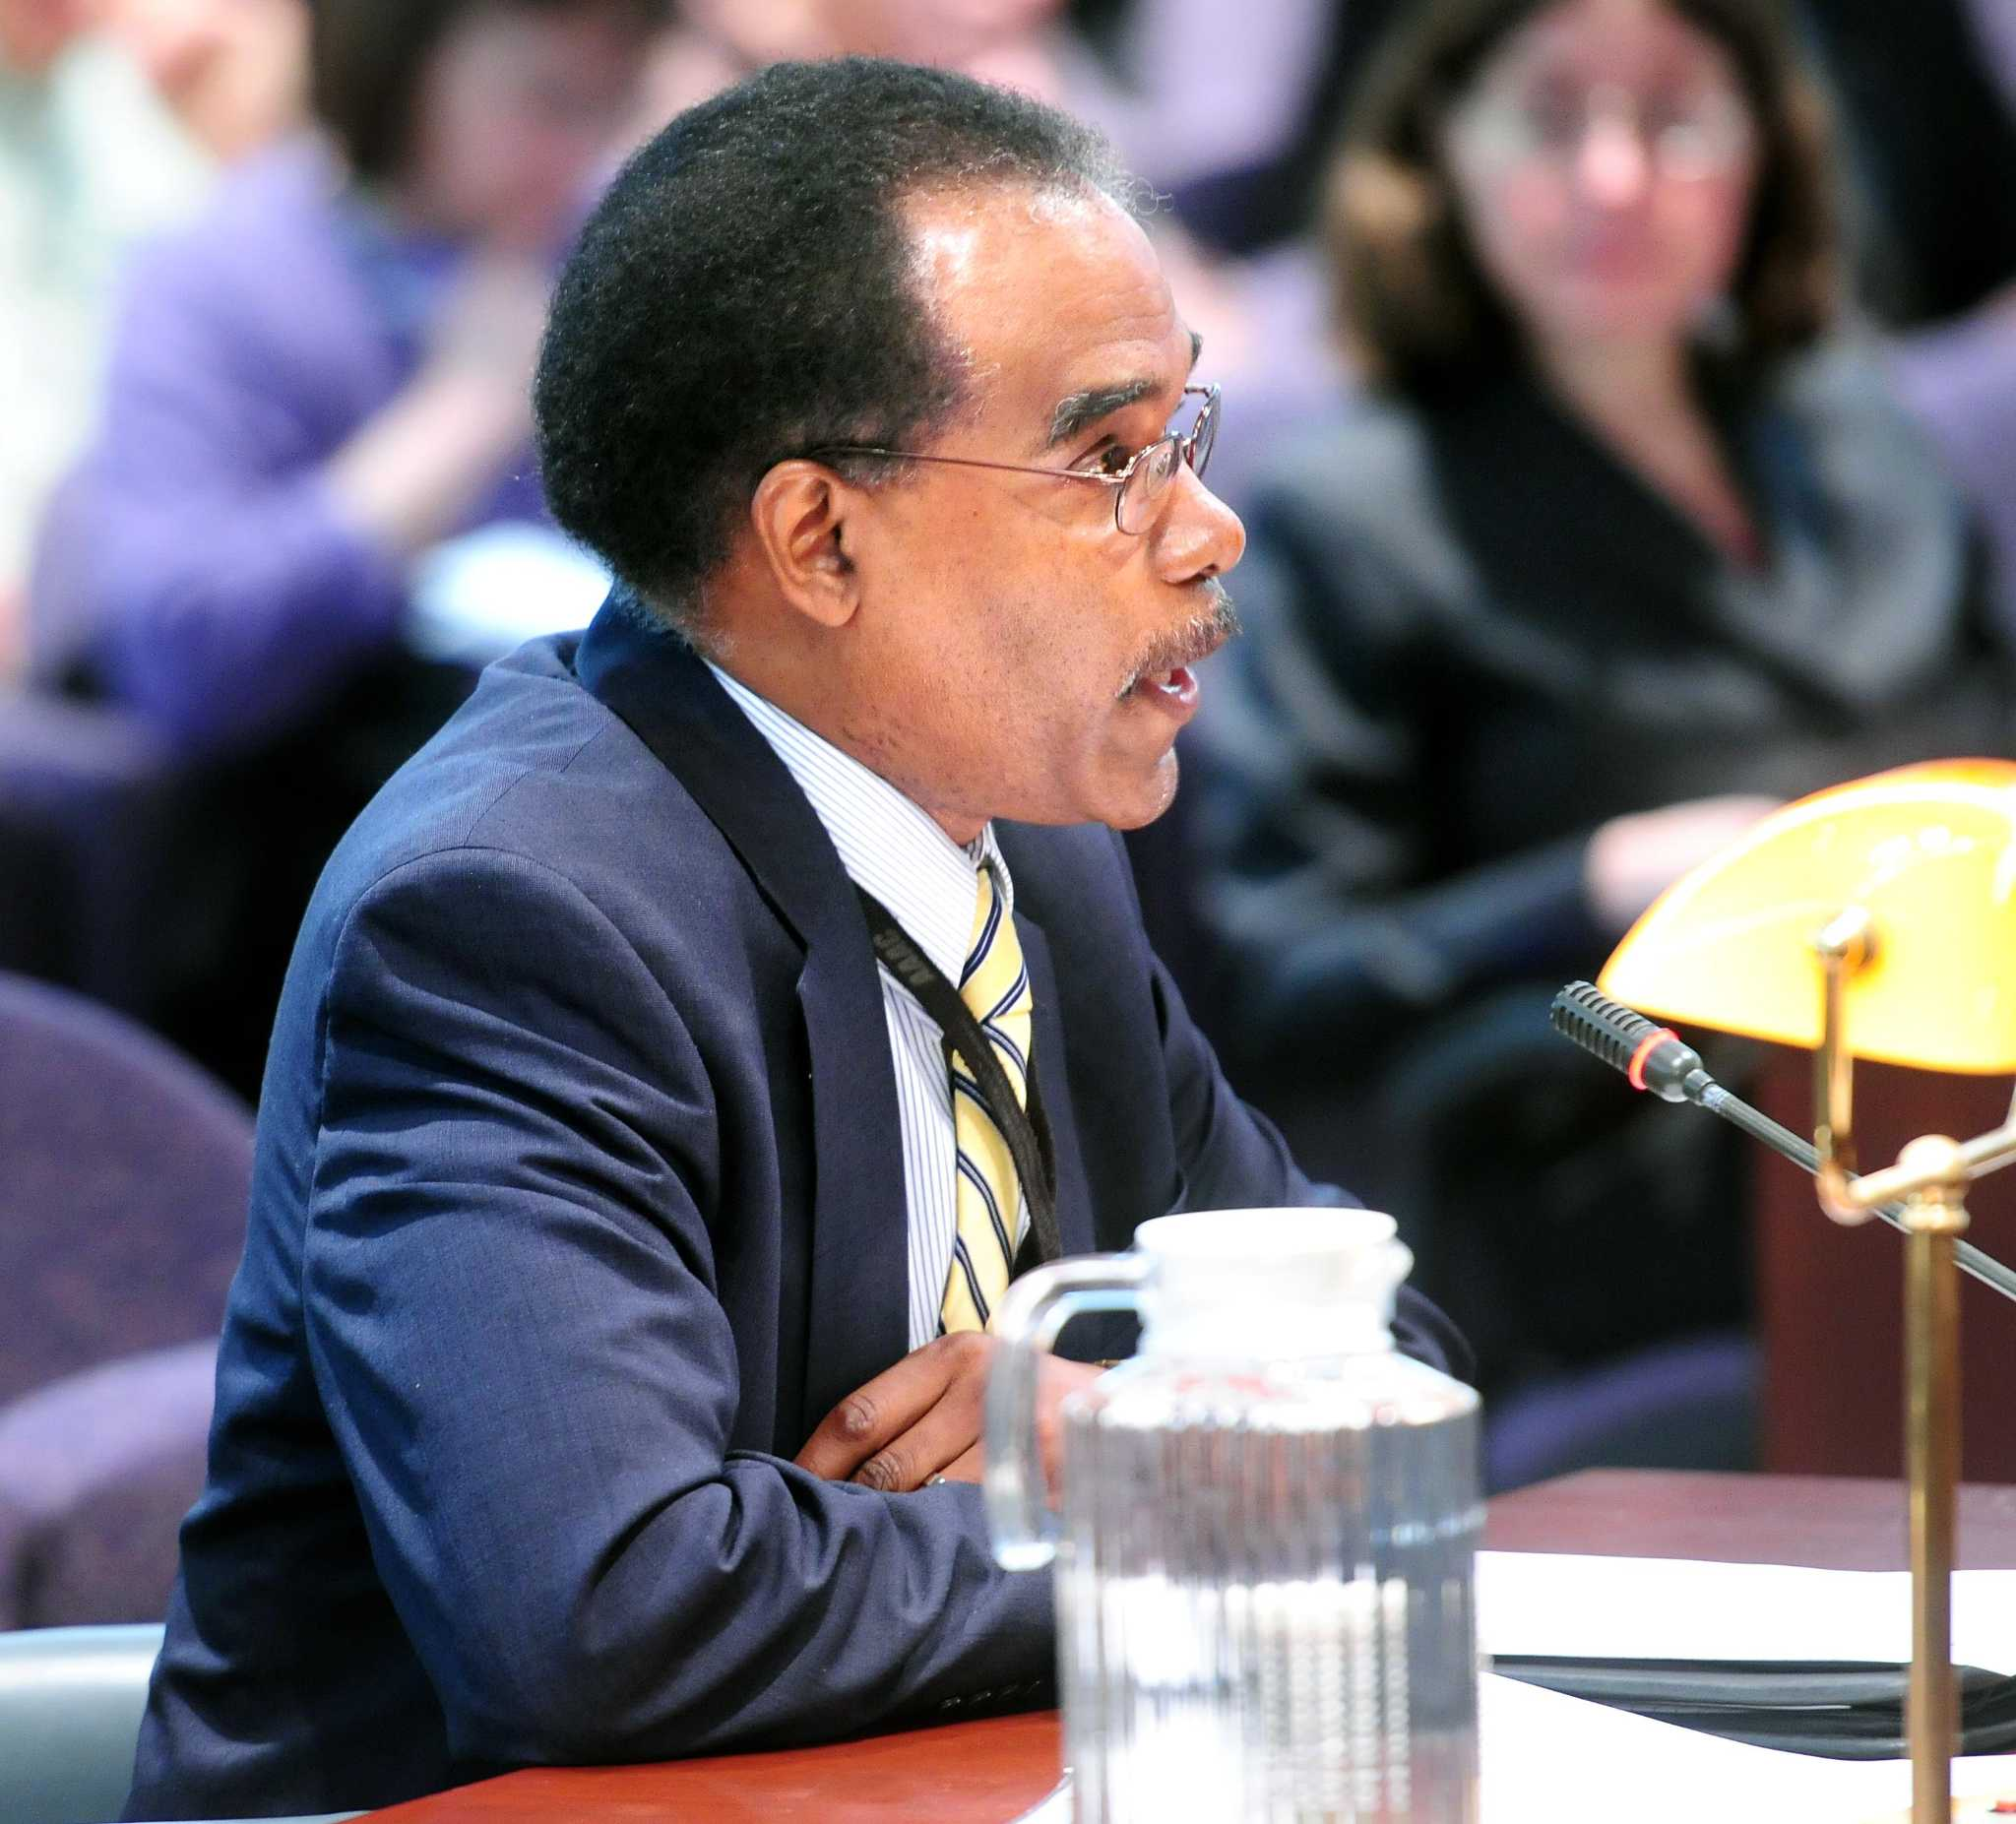 Conn. Considers Bill To Strengthen Anti-profiling Law